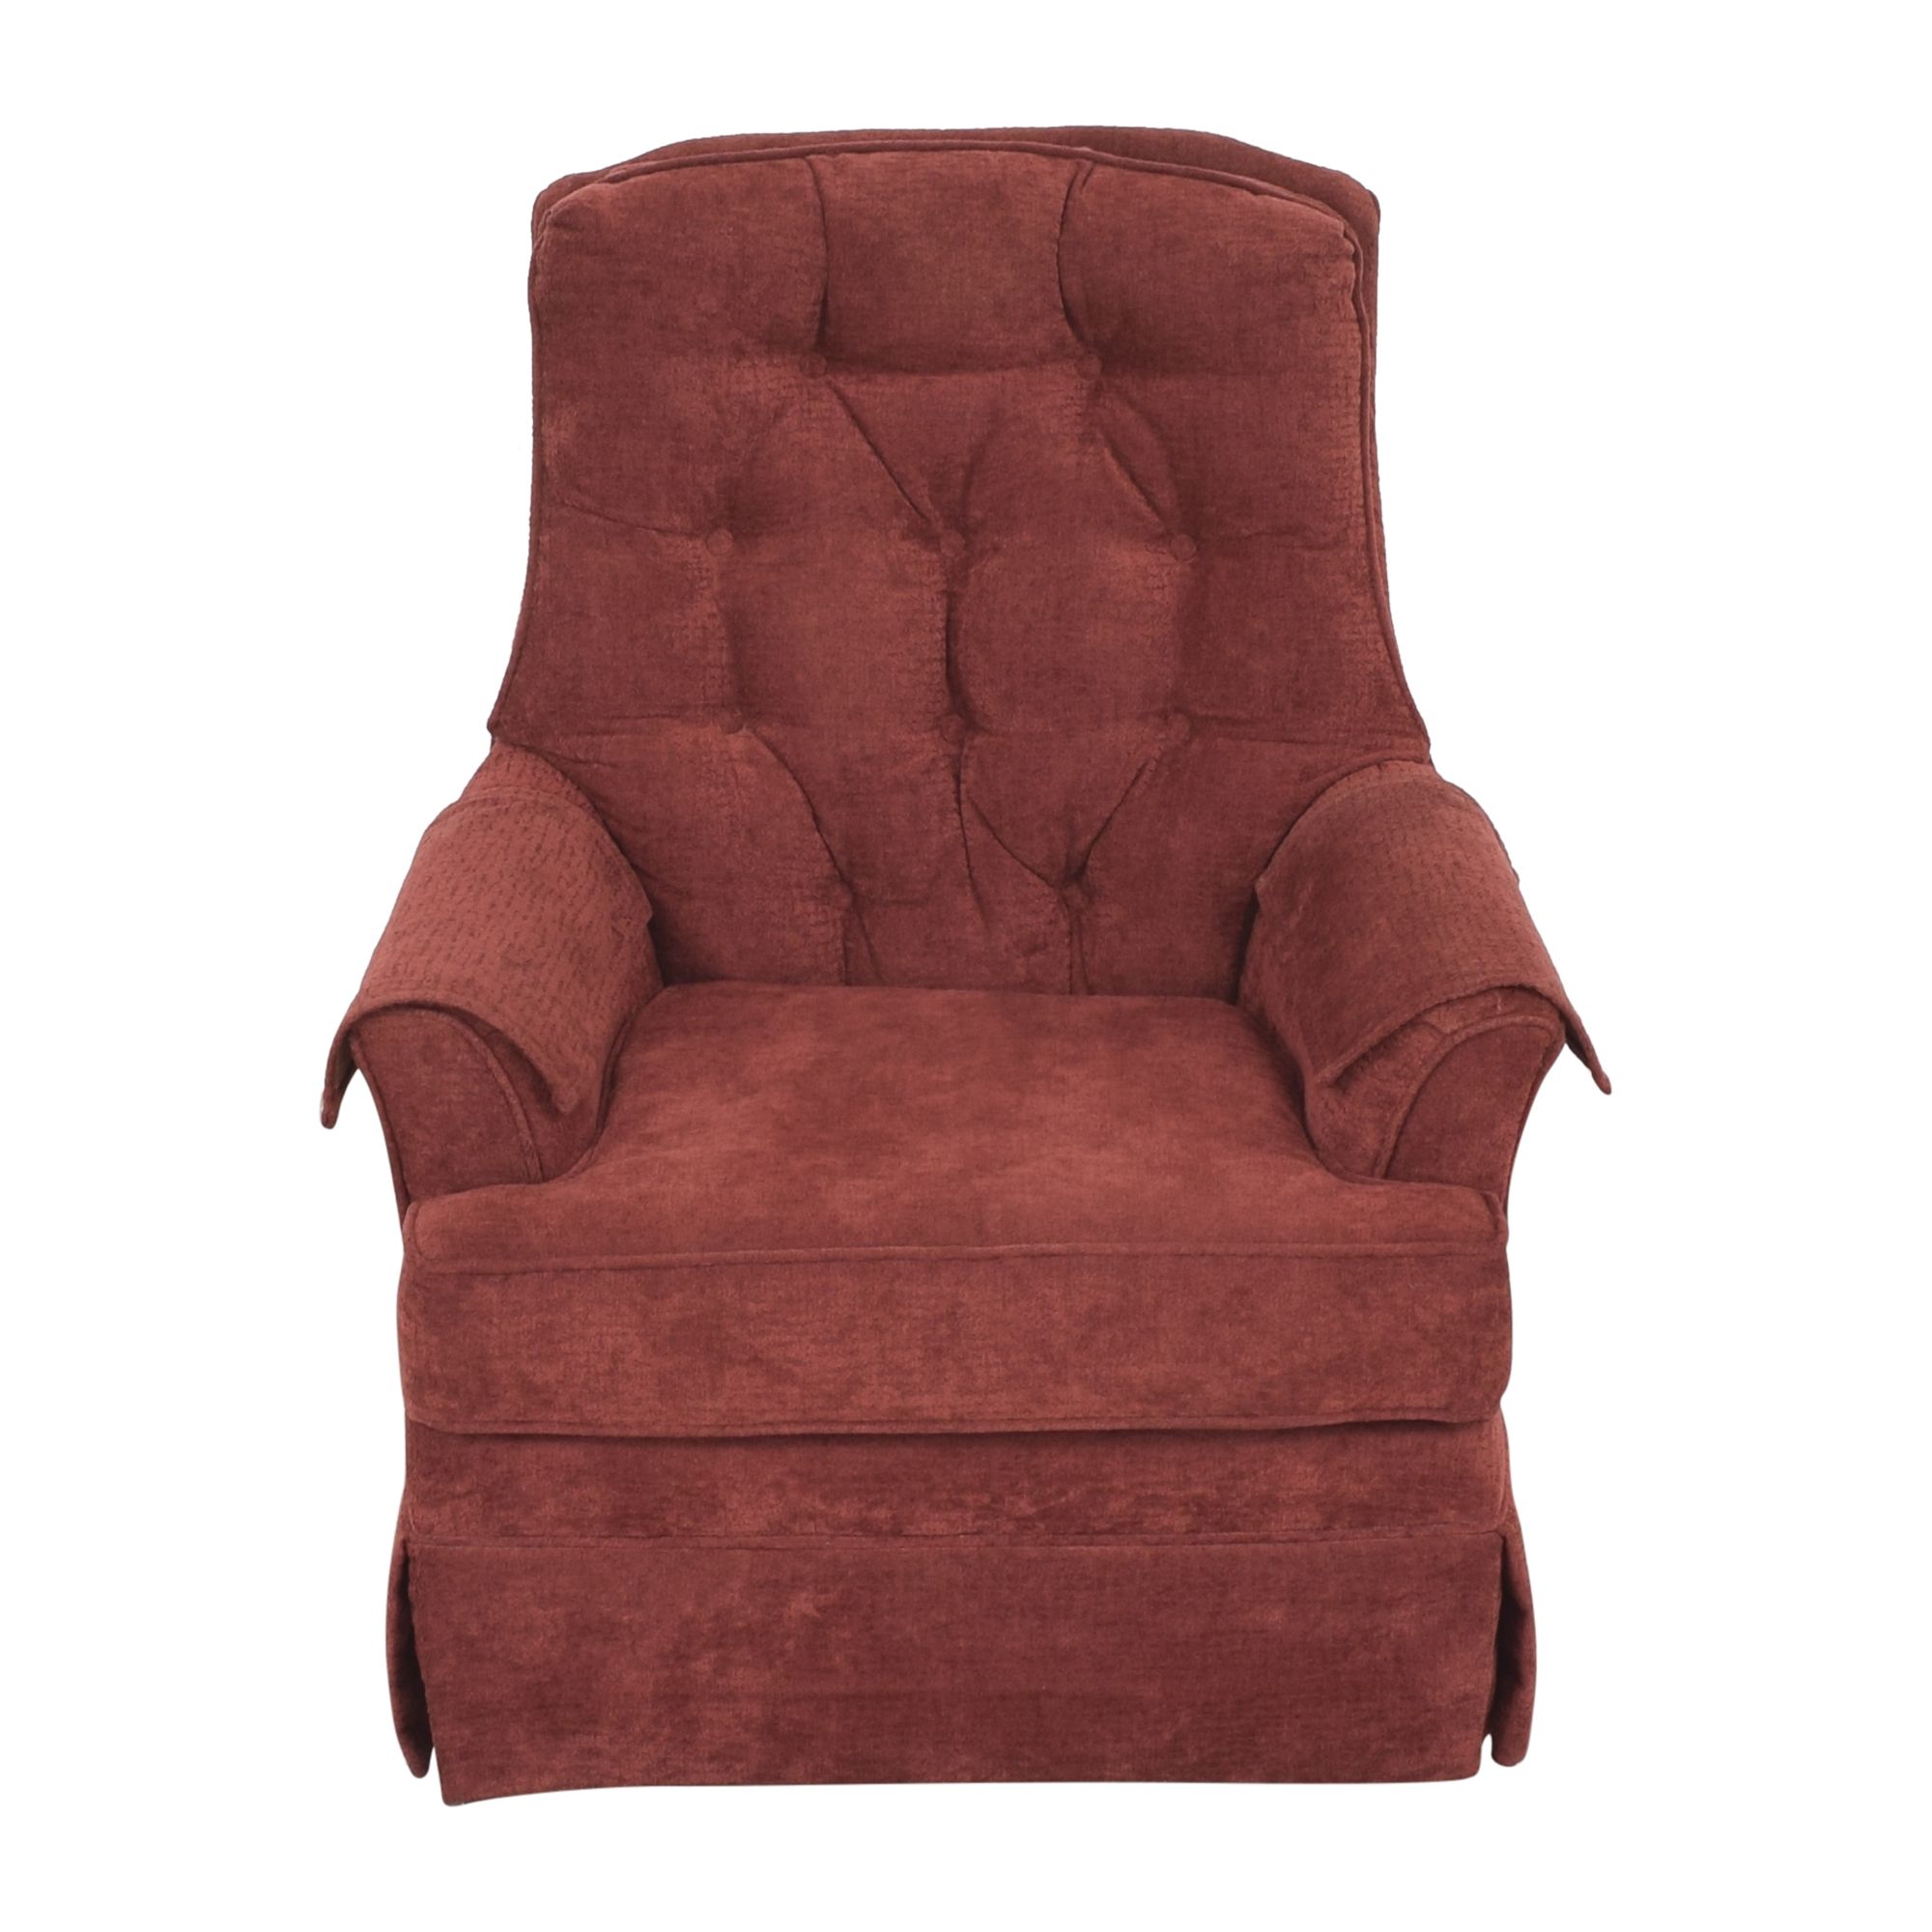 Rowe Furniture Rowe Furniture Tufted Swivel Chair coupon